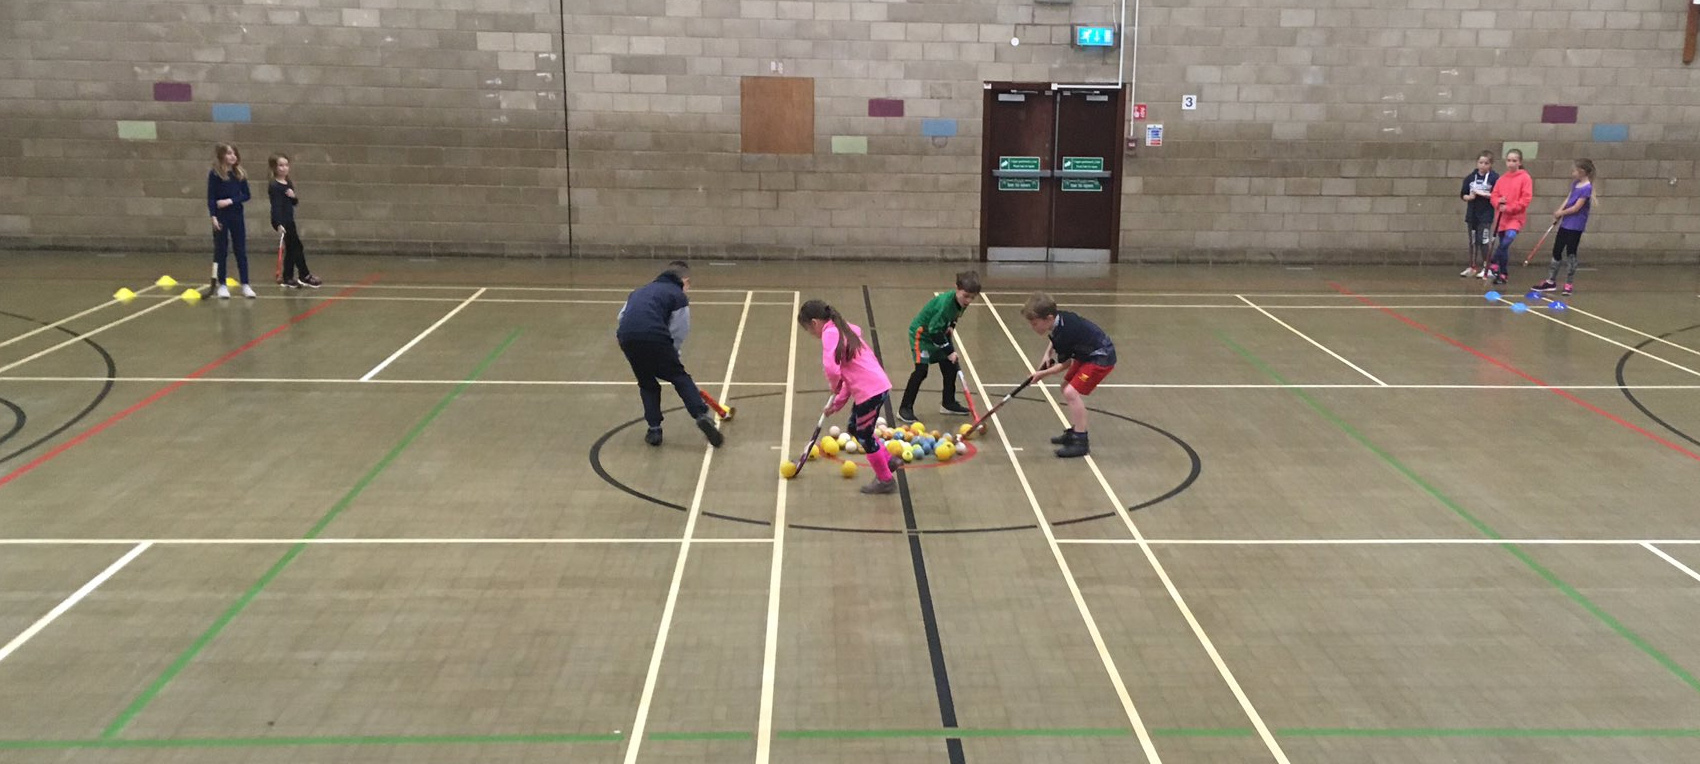 Great to have 13 new hockey players at Llandrindod Wells Sports Centre